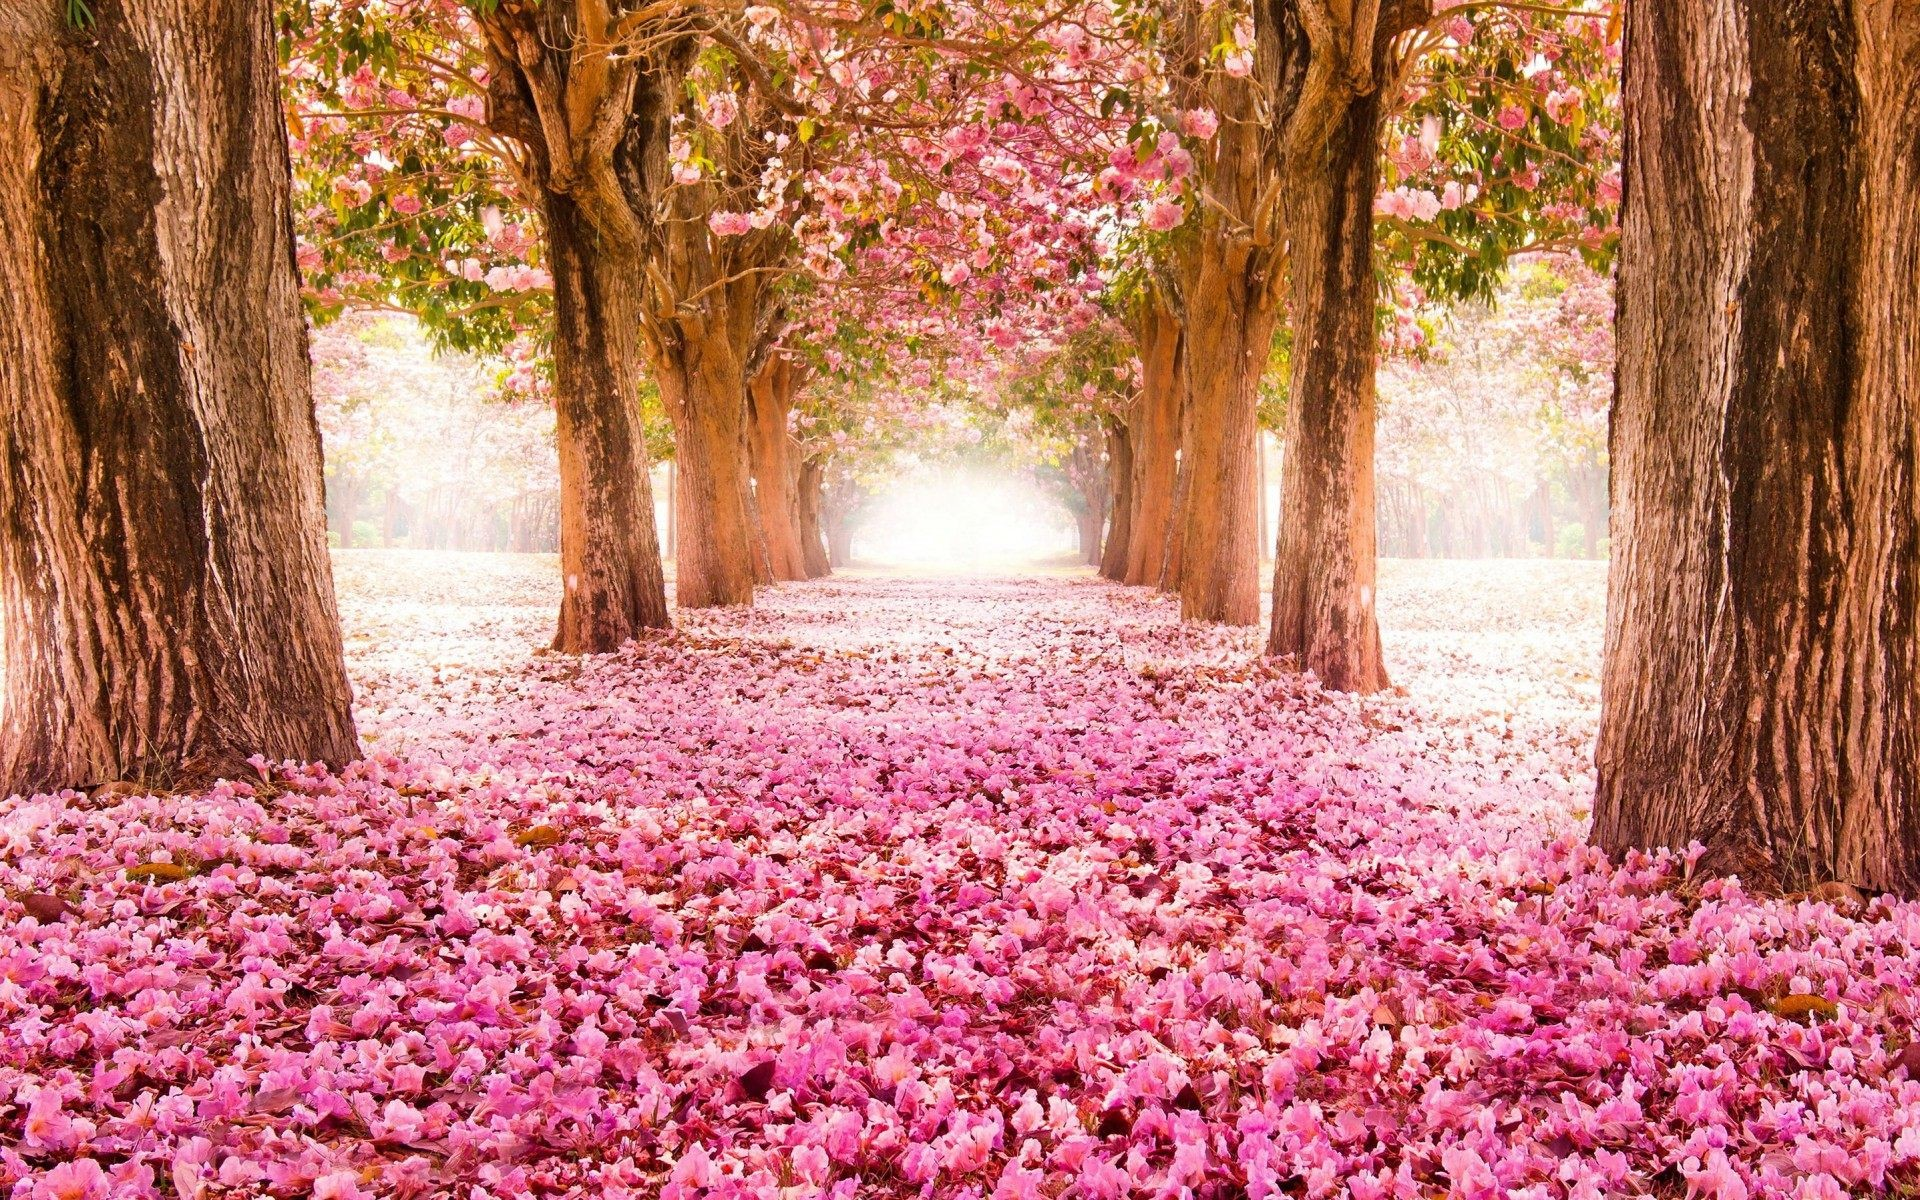 Desktop wallpaper spring flowers 60 images 1920x1200 pink blossom flowers spring tree hd wallpaper desktop wallpapers high definition monitor download free amazing mightylinksfo